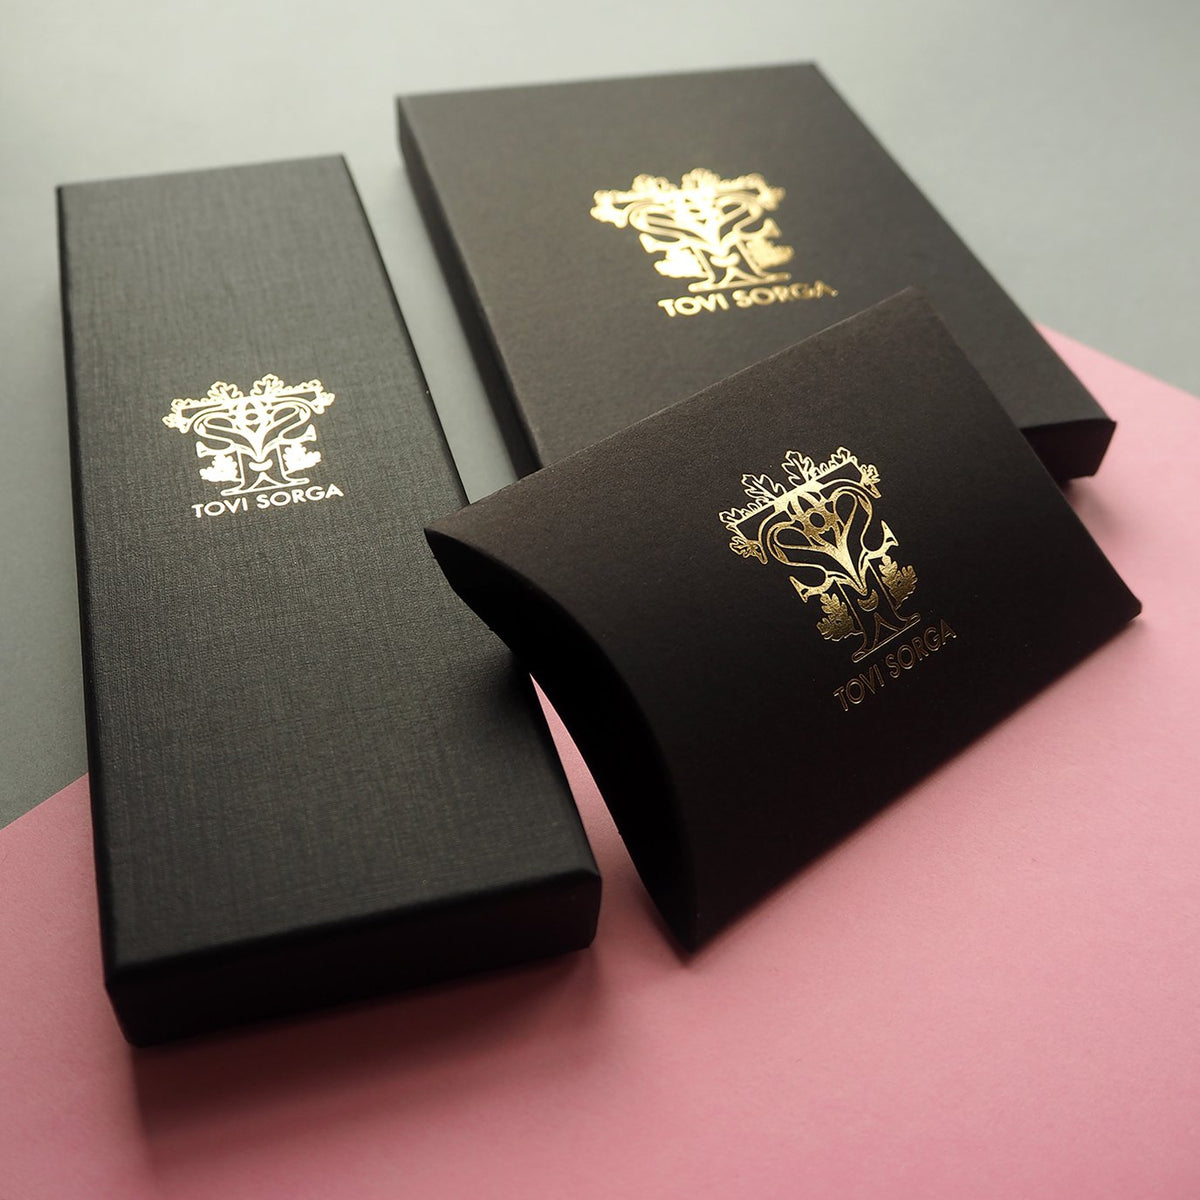 Luxury gift boxes for designer leather goods by UK accessories Tovi Sorga